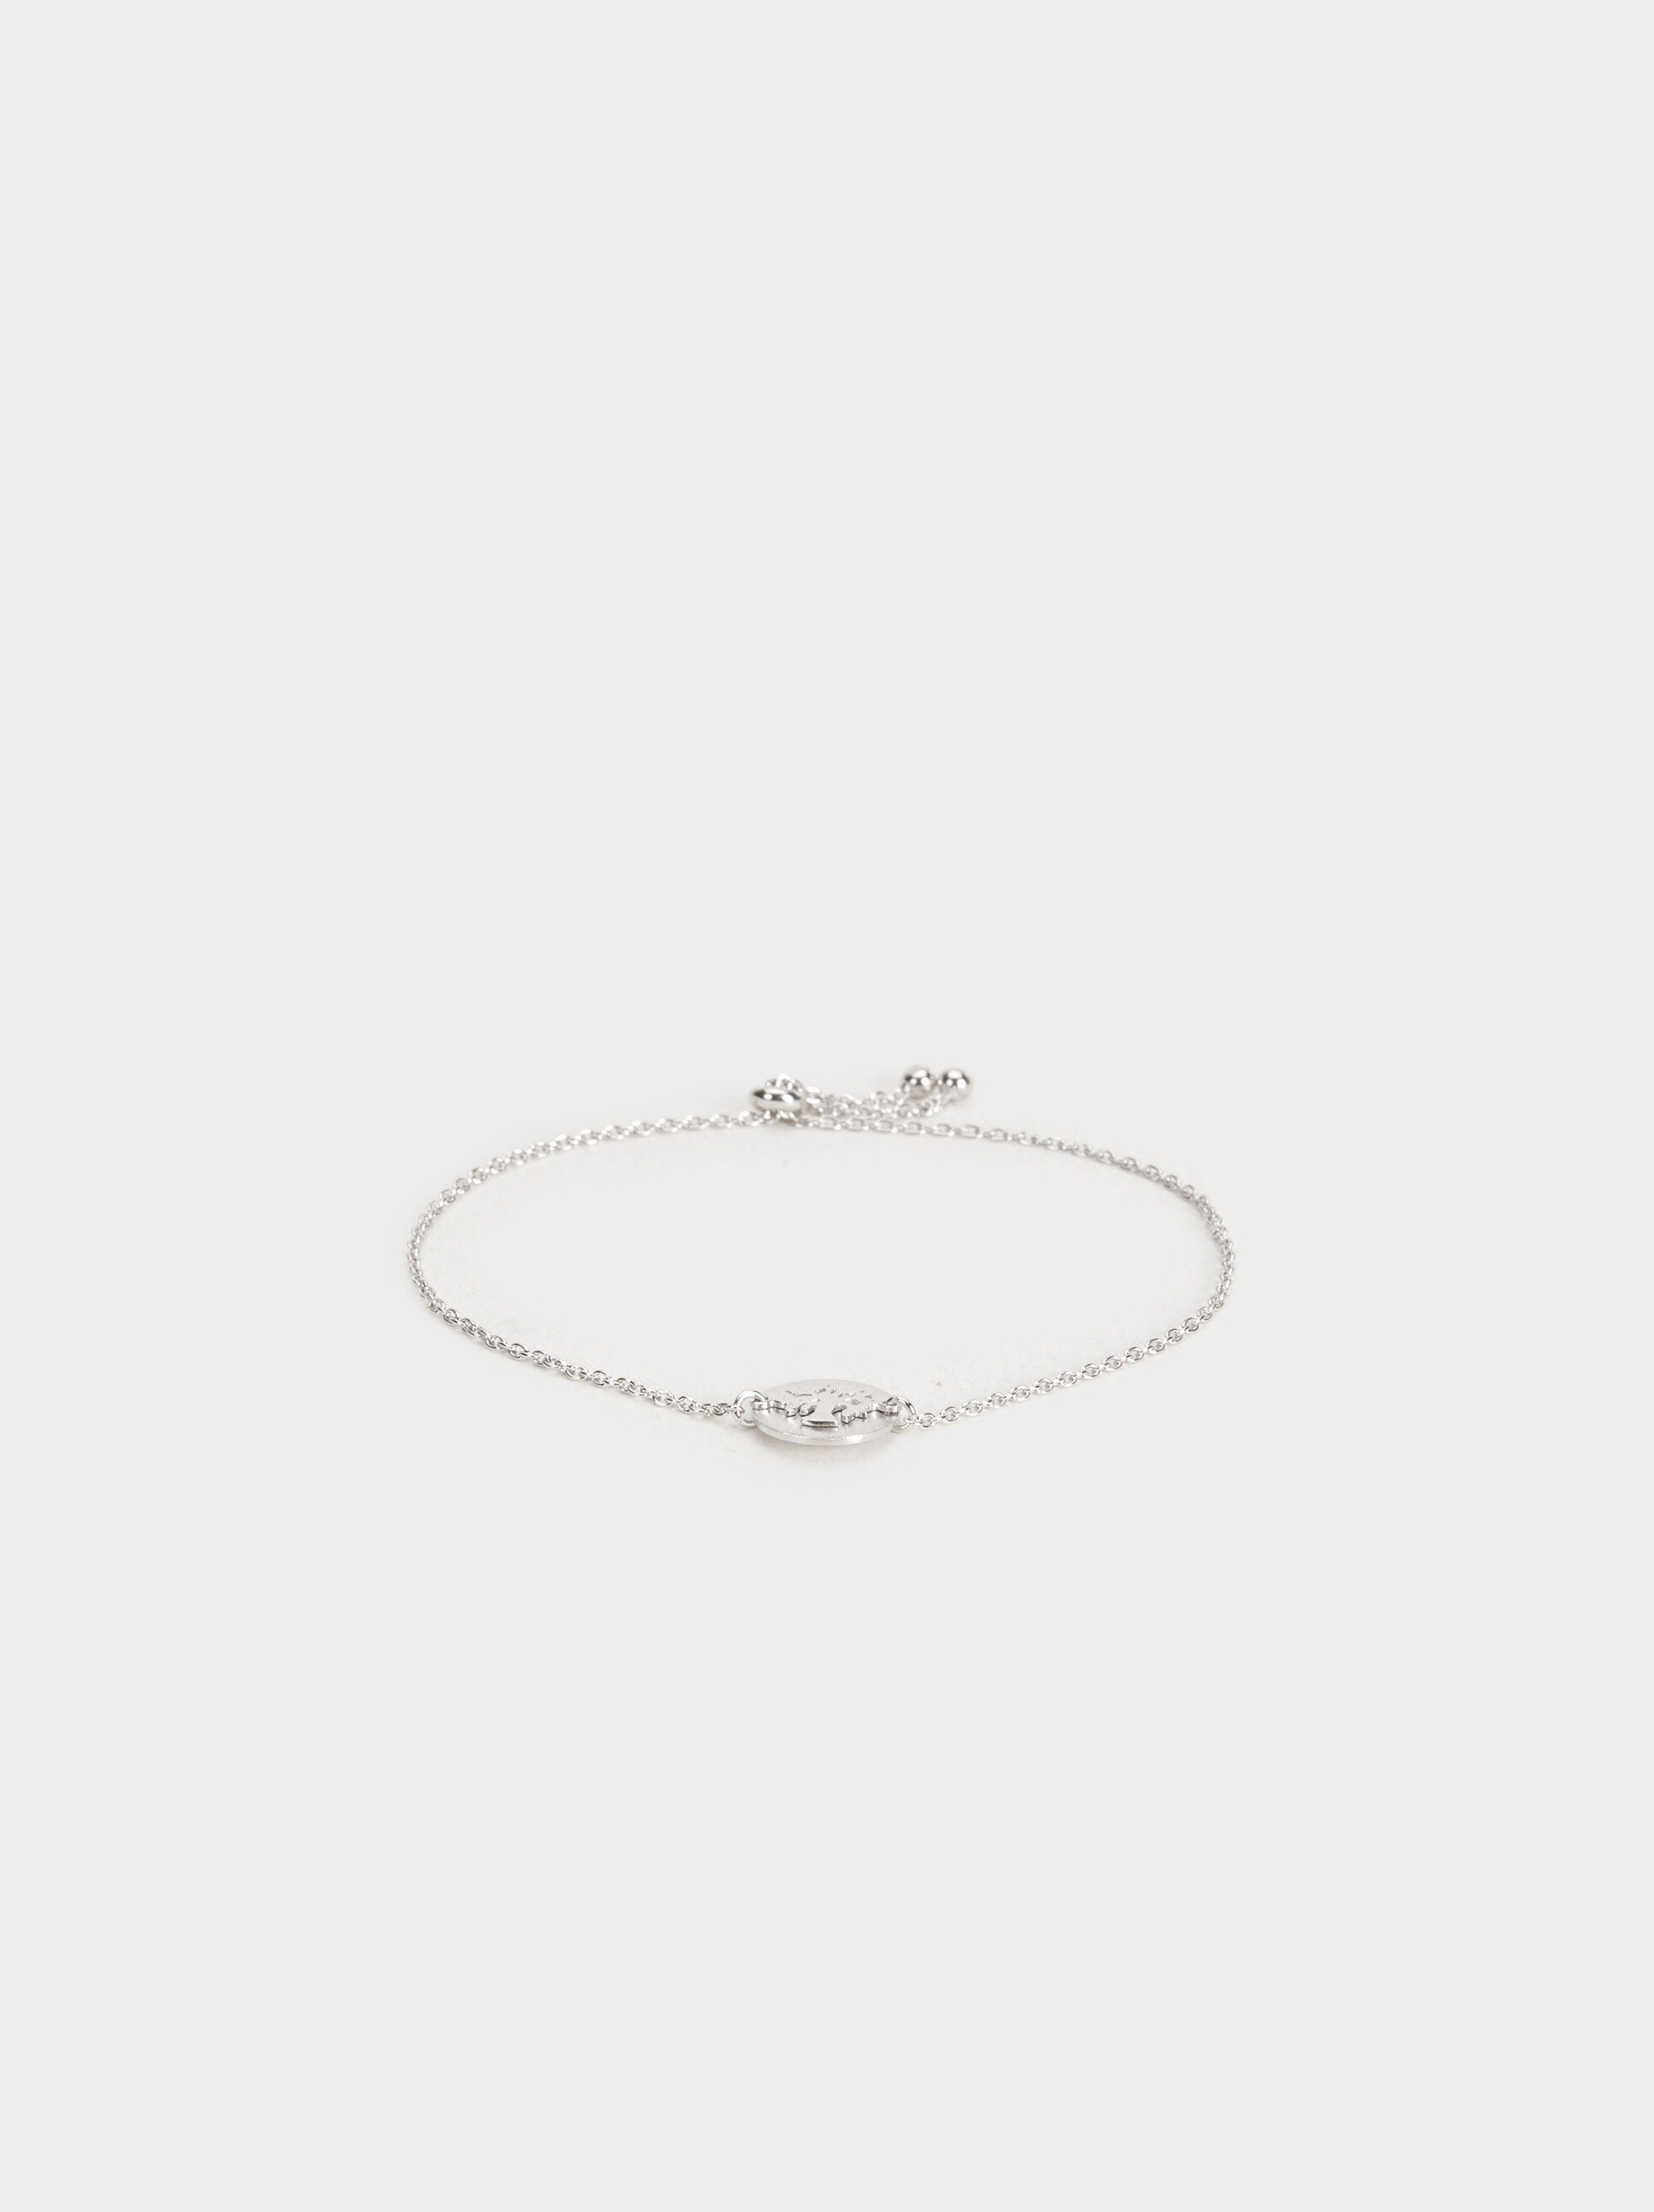 925 Silver Adjustable Bracelet With Tree Charm, Silver, hi-res